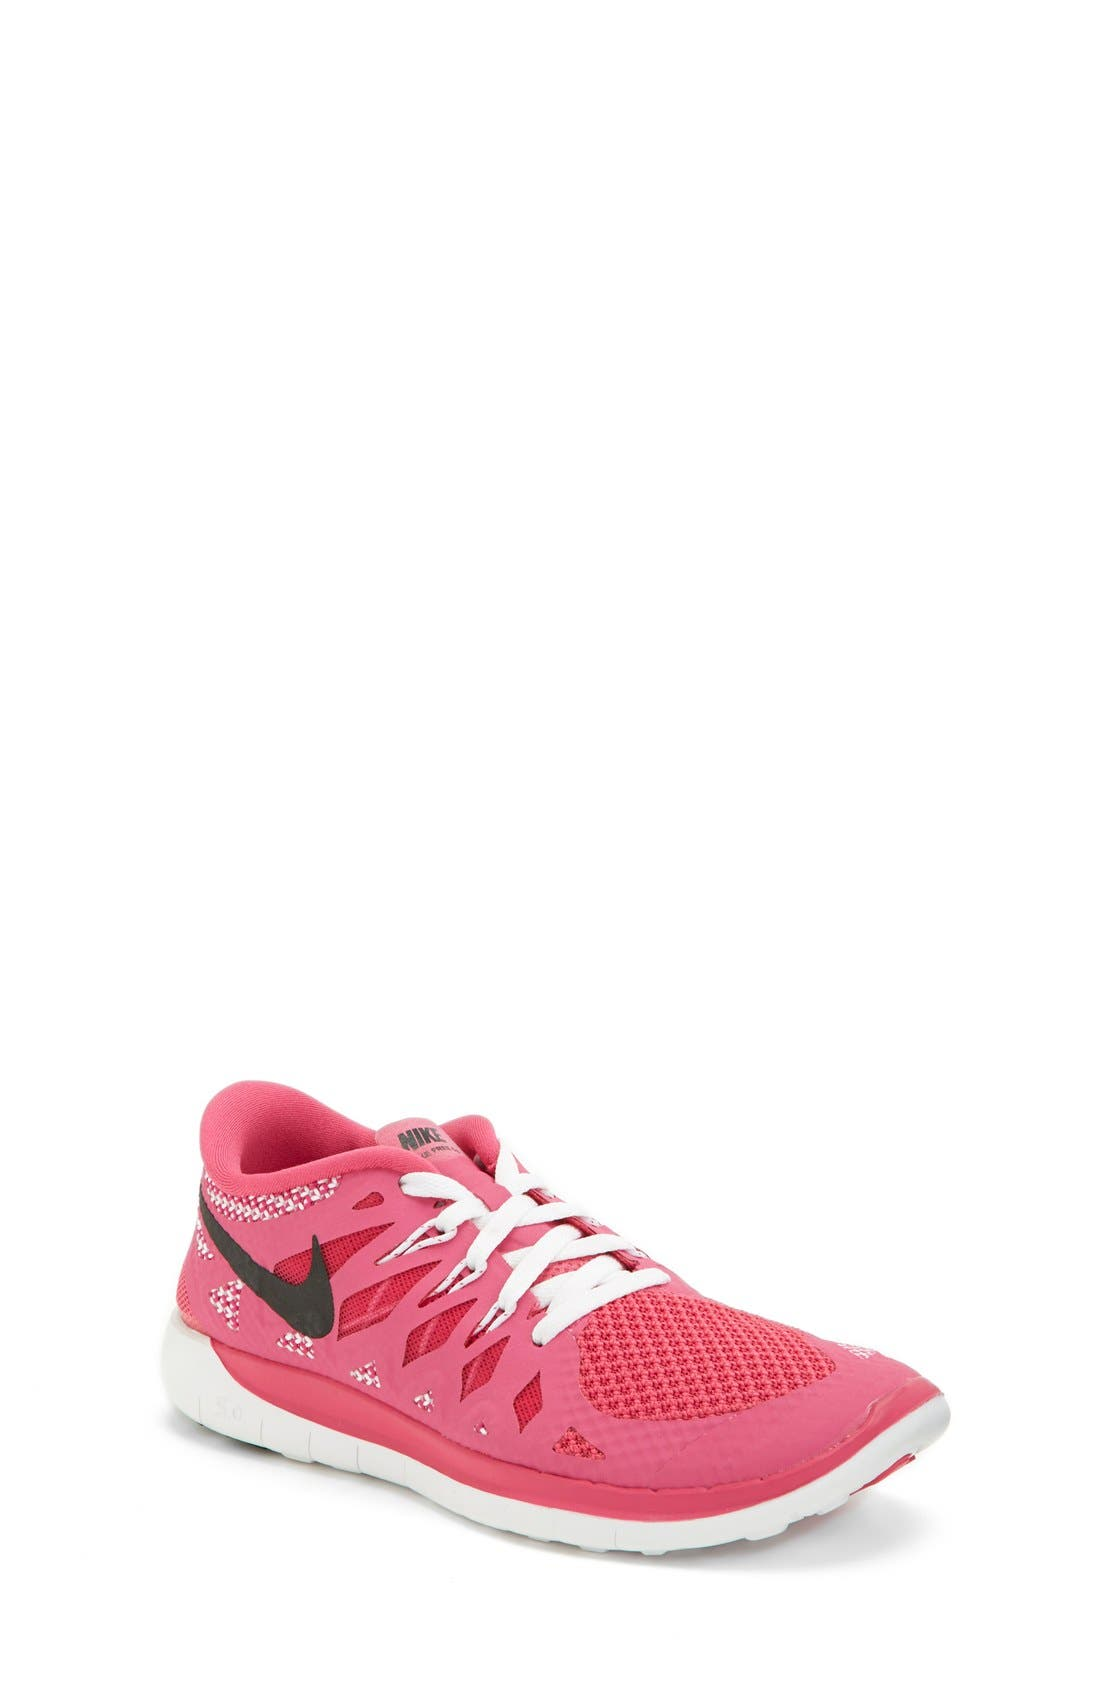 Main Image - Nike 'Free 5.0' Running Shoe (Big Kid)